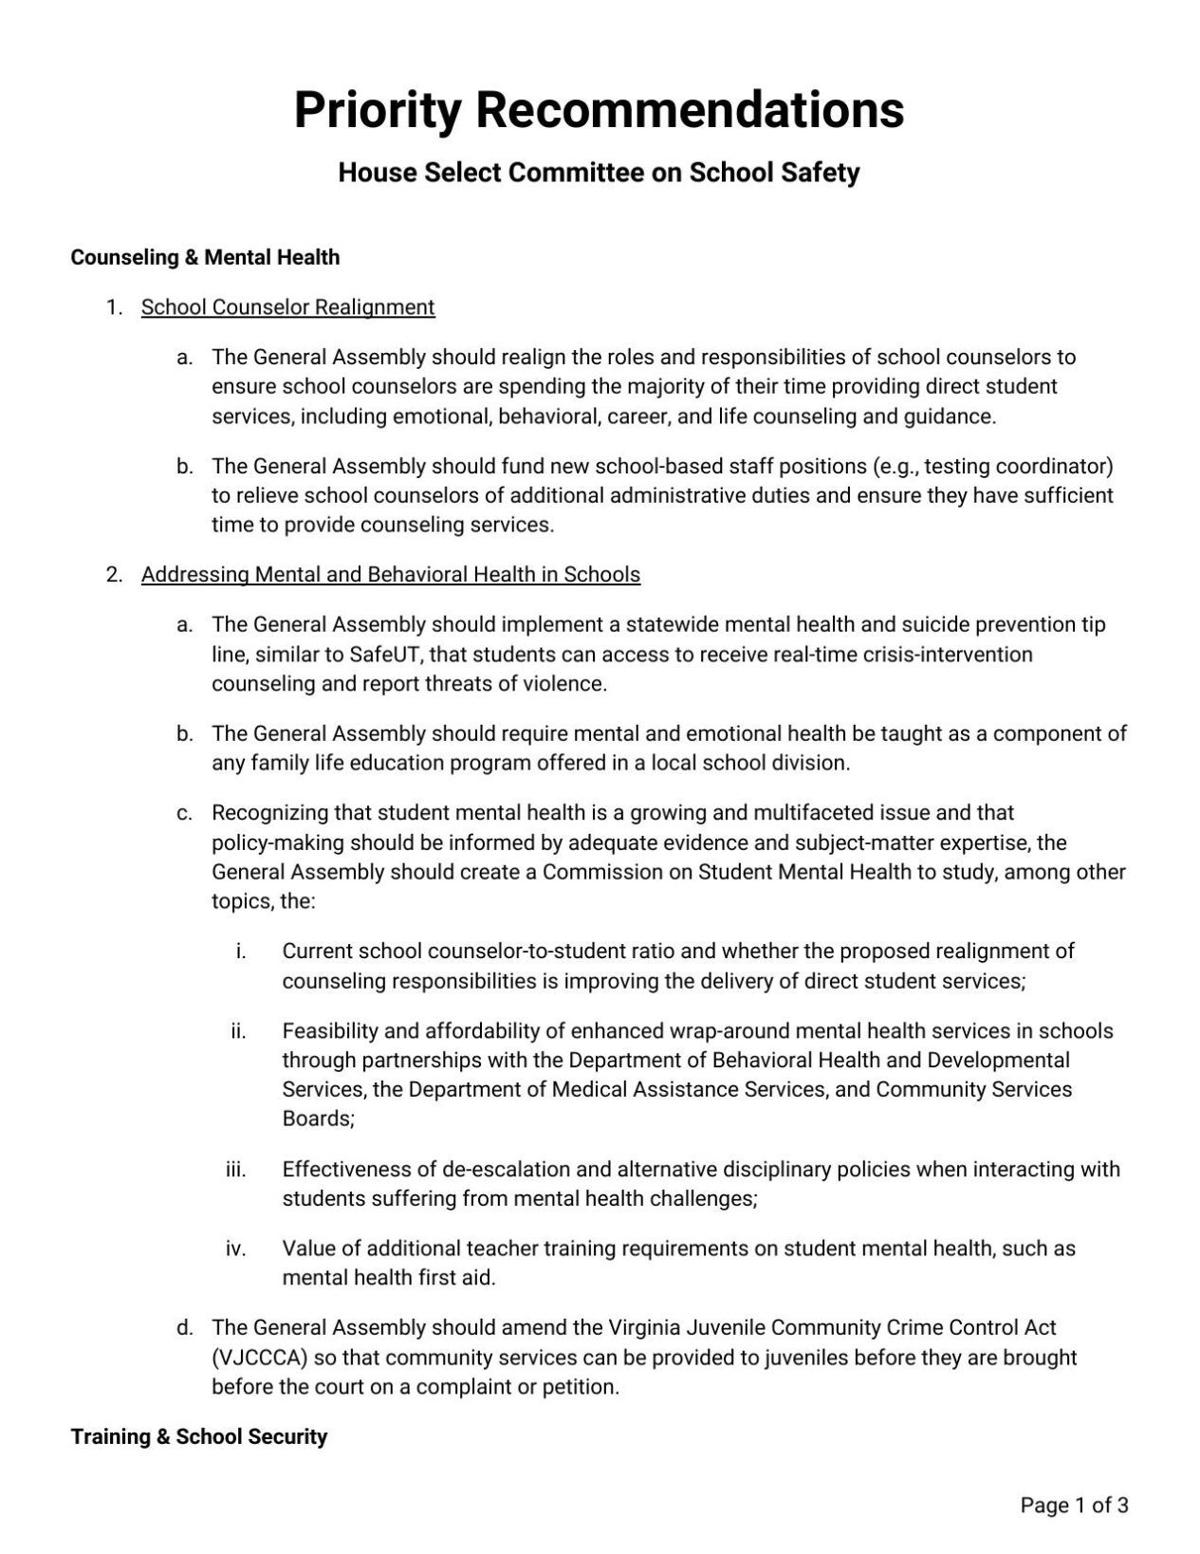 School Safety Committee Recommendations